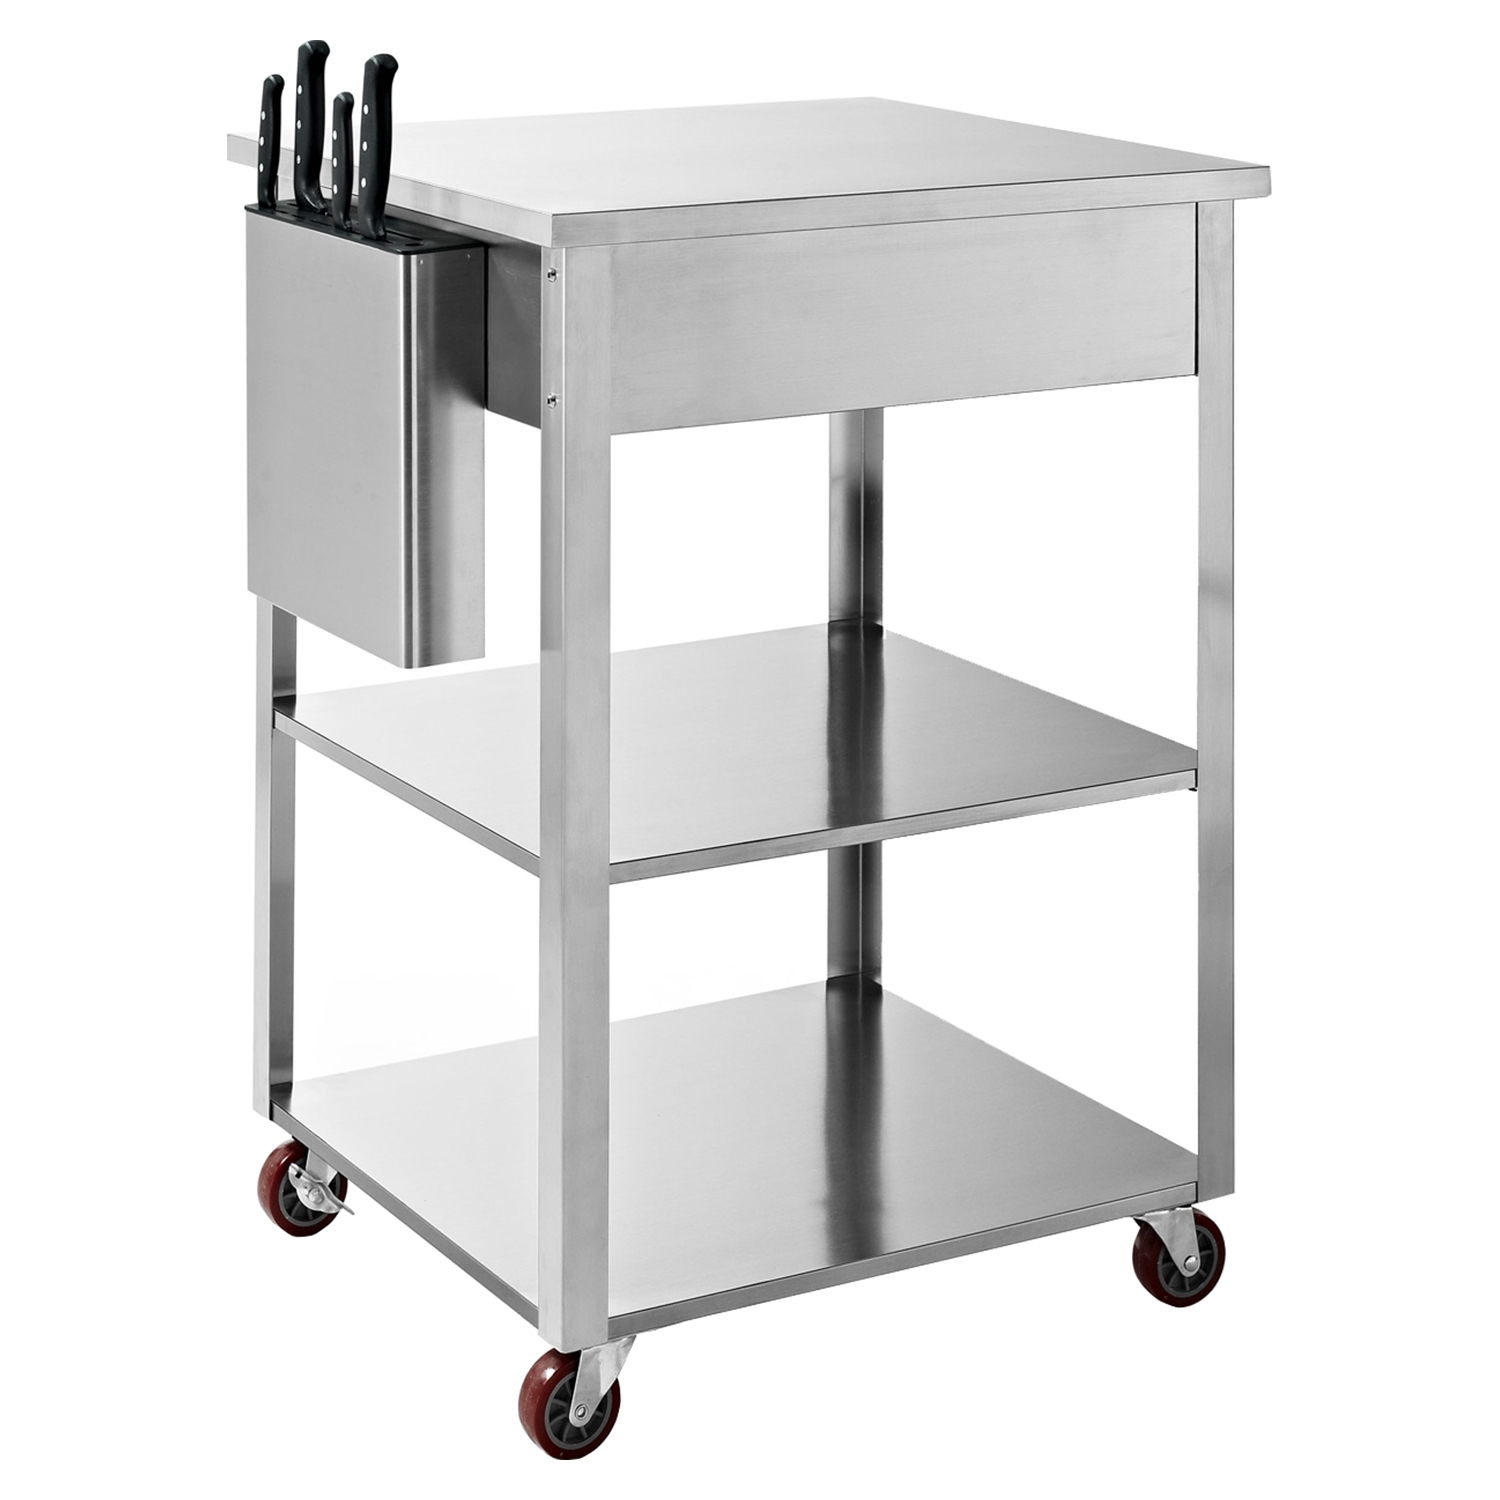 Culinary Prep Kitchen Cart - Stainless Steel